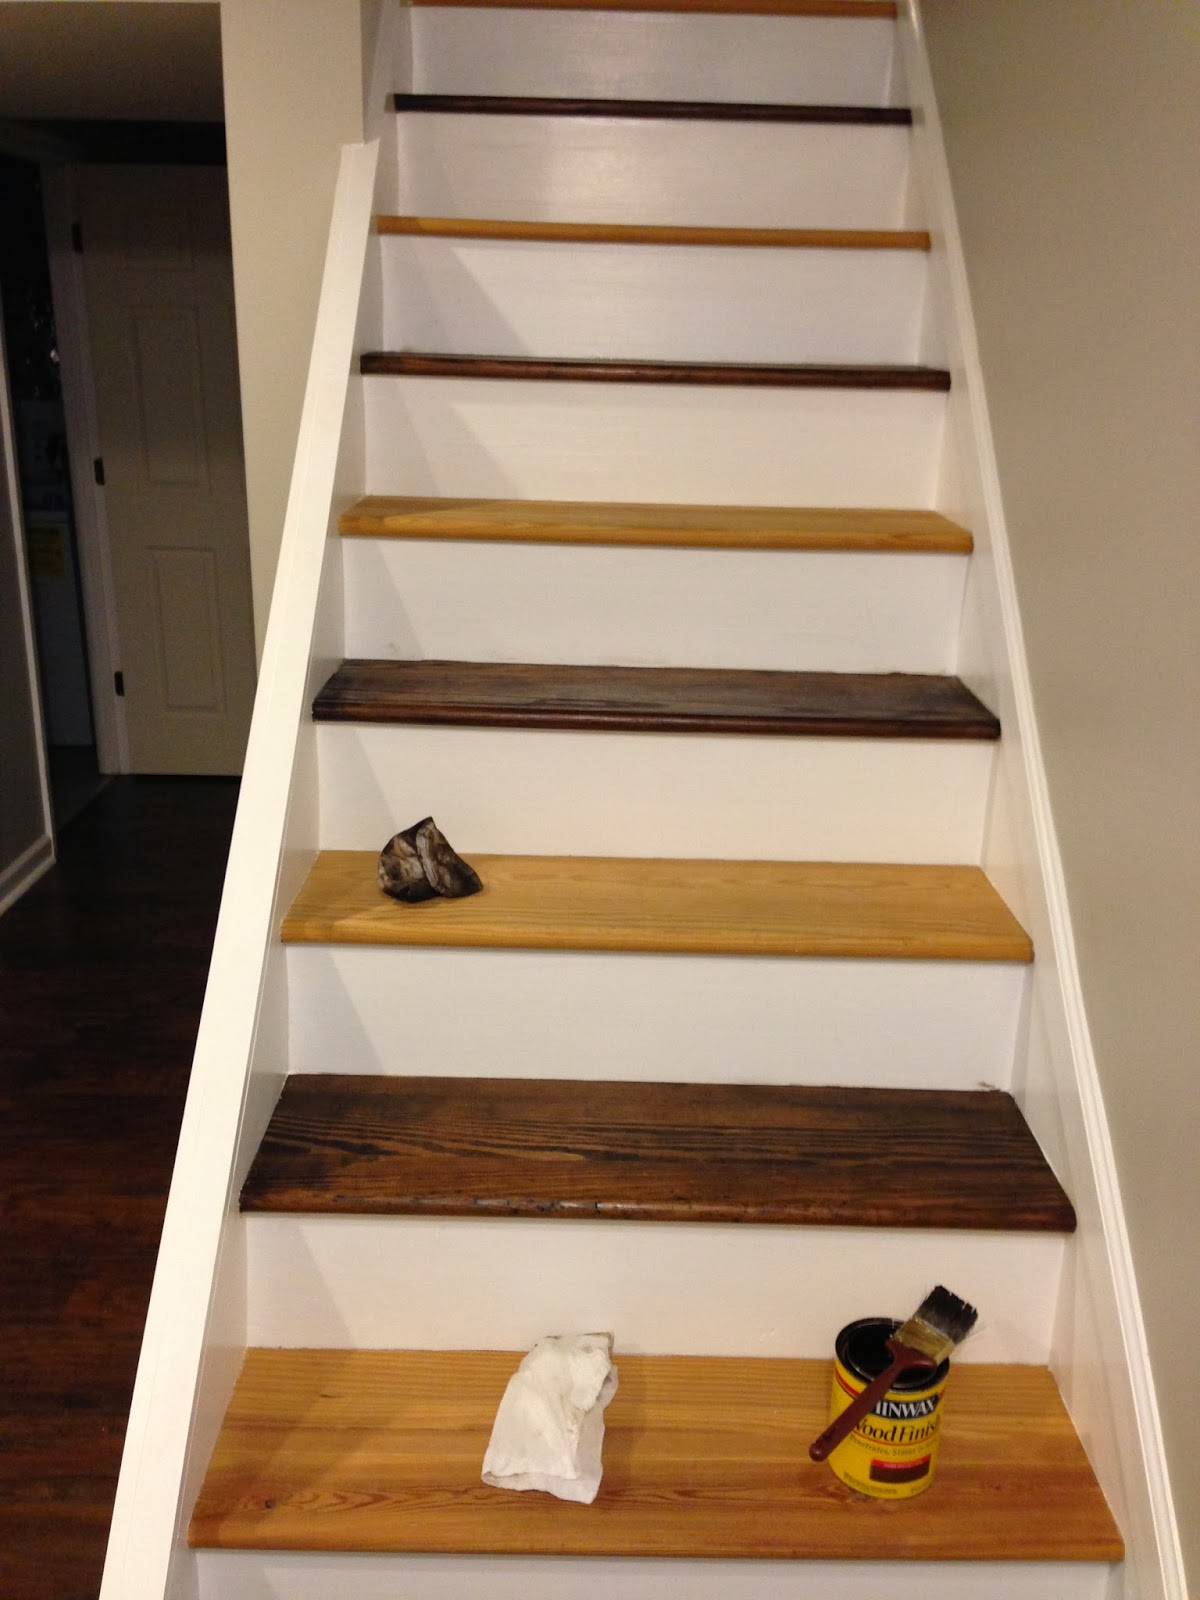 I Did The Same Method When Staining The Stairs. I Carefully Stained The  Steps  Trying Not To Get Any On The Risers Or Trim. After 15 Minutes, I  Wiped The ...